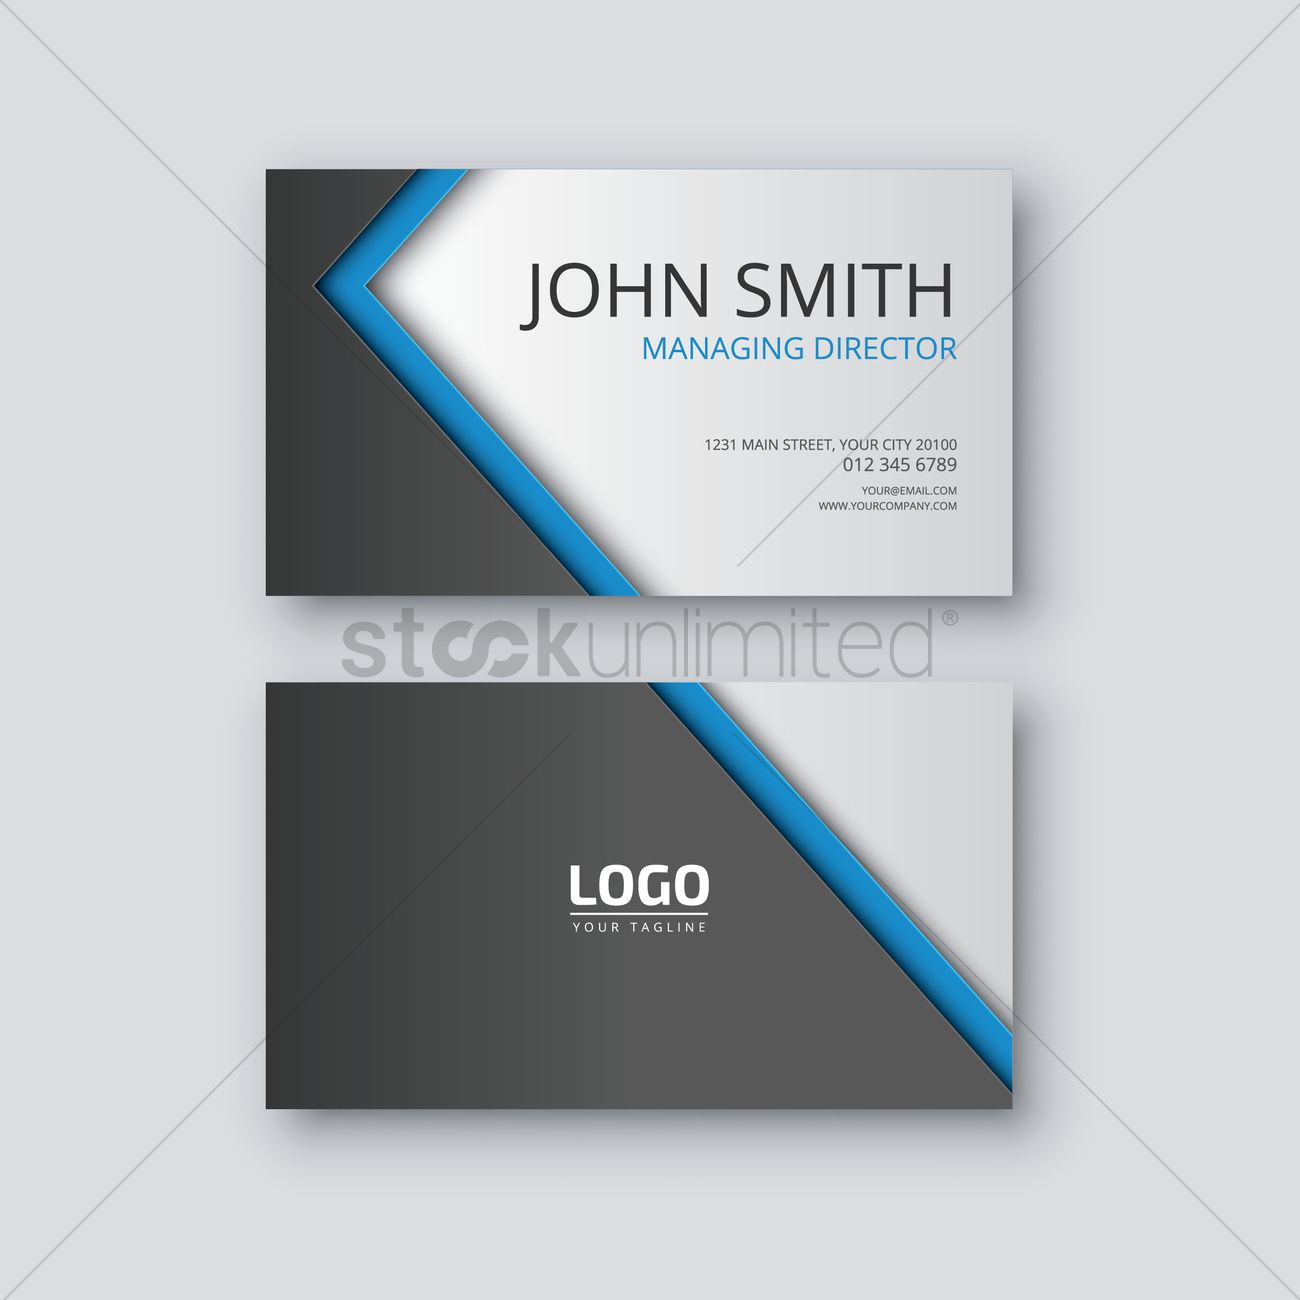 Visiting card vector image 1823277 stockunlimited visiting card vector graphic colourmoves Choice Image